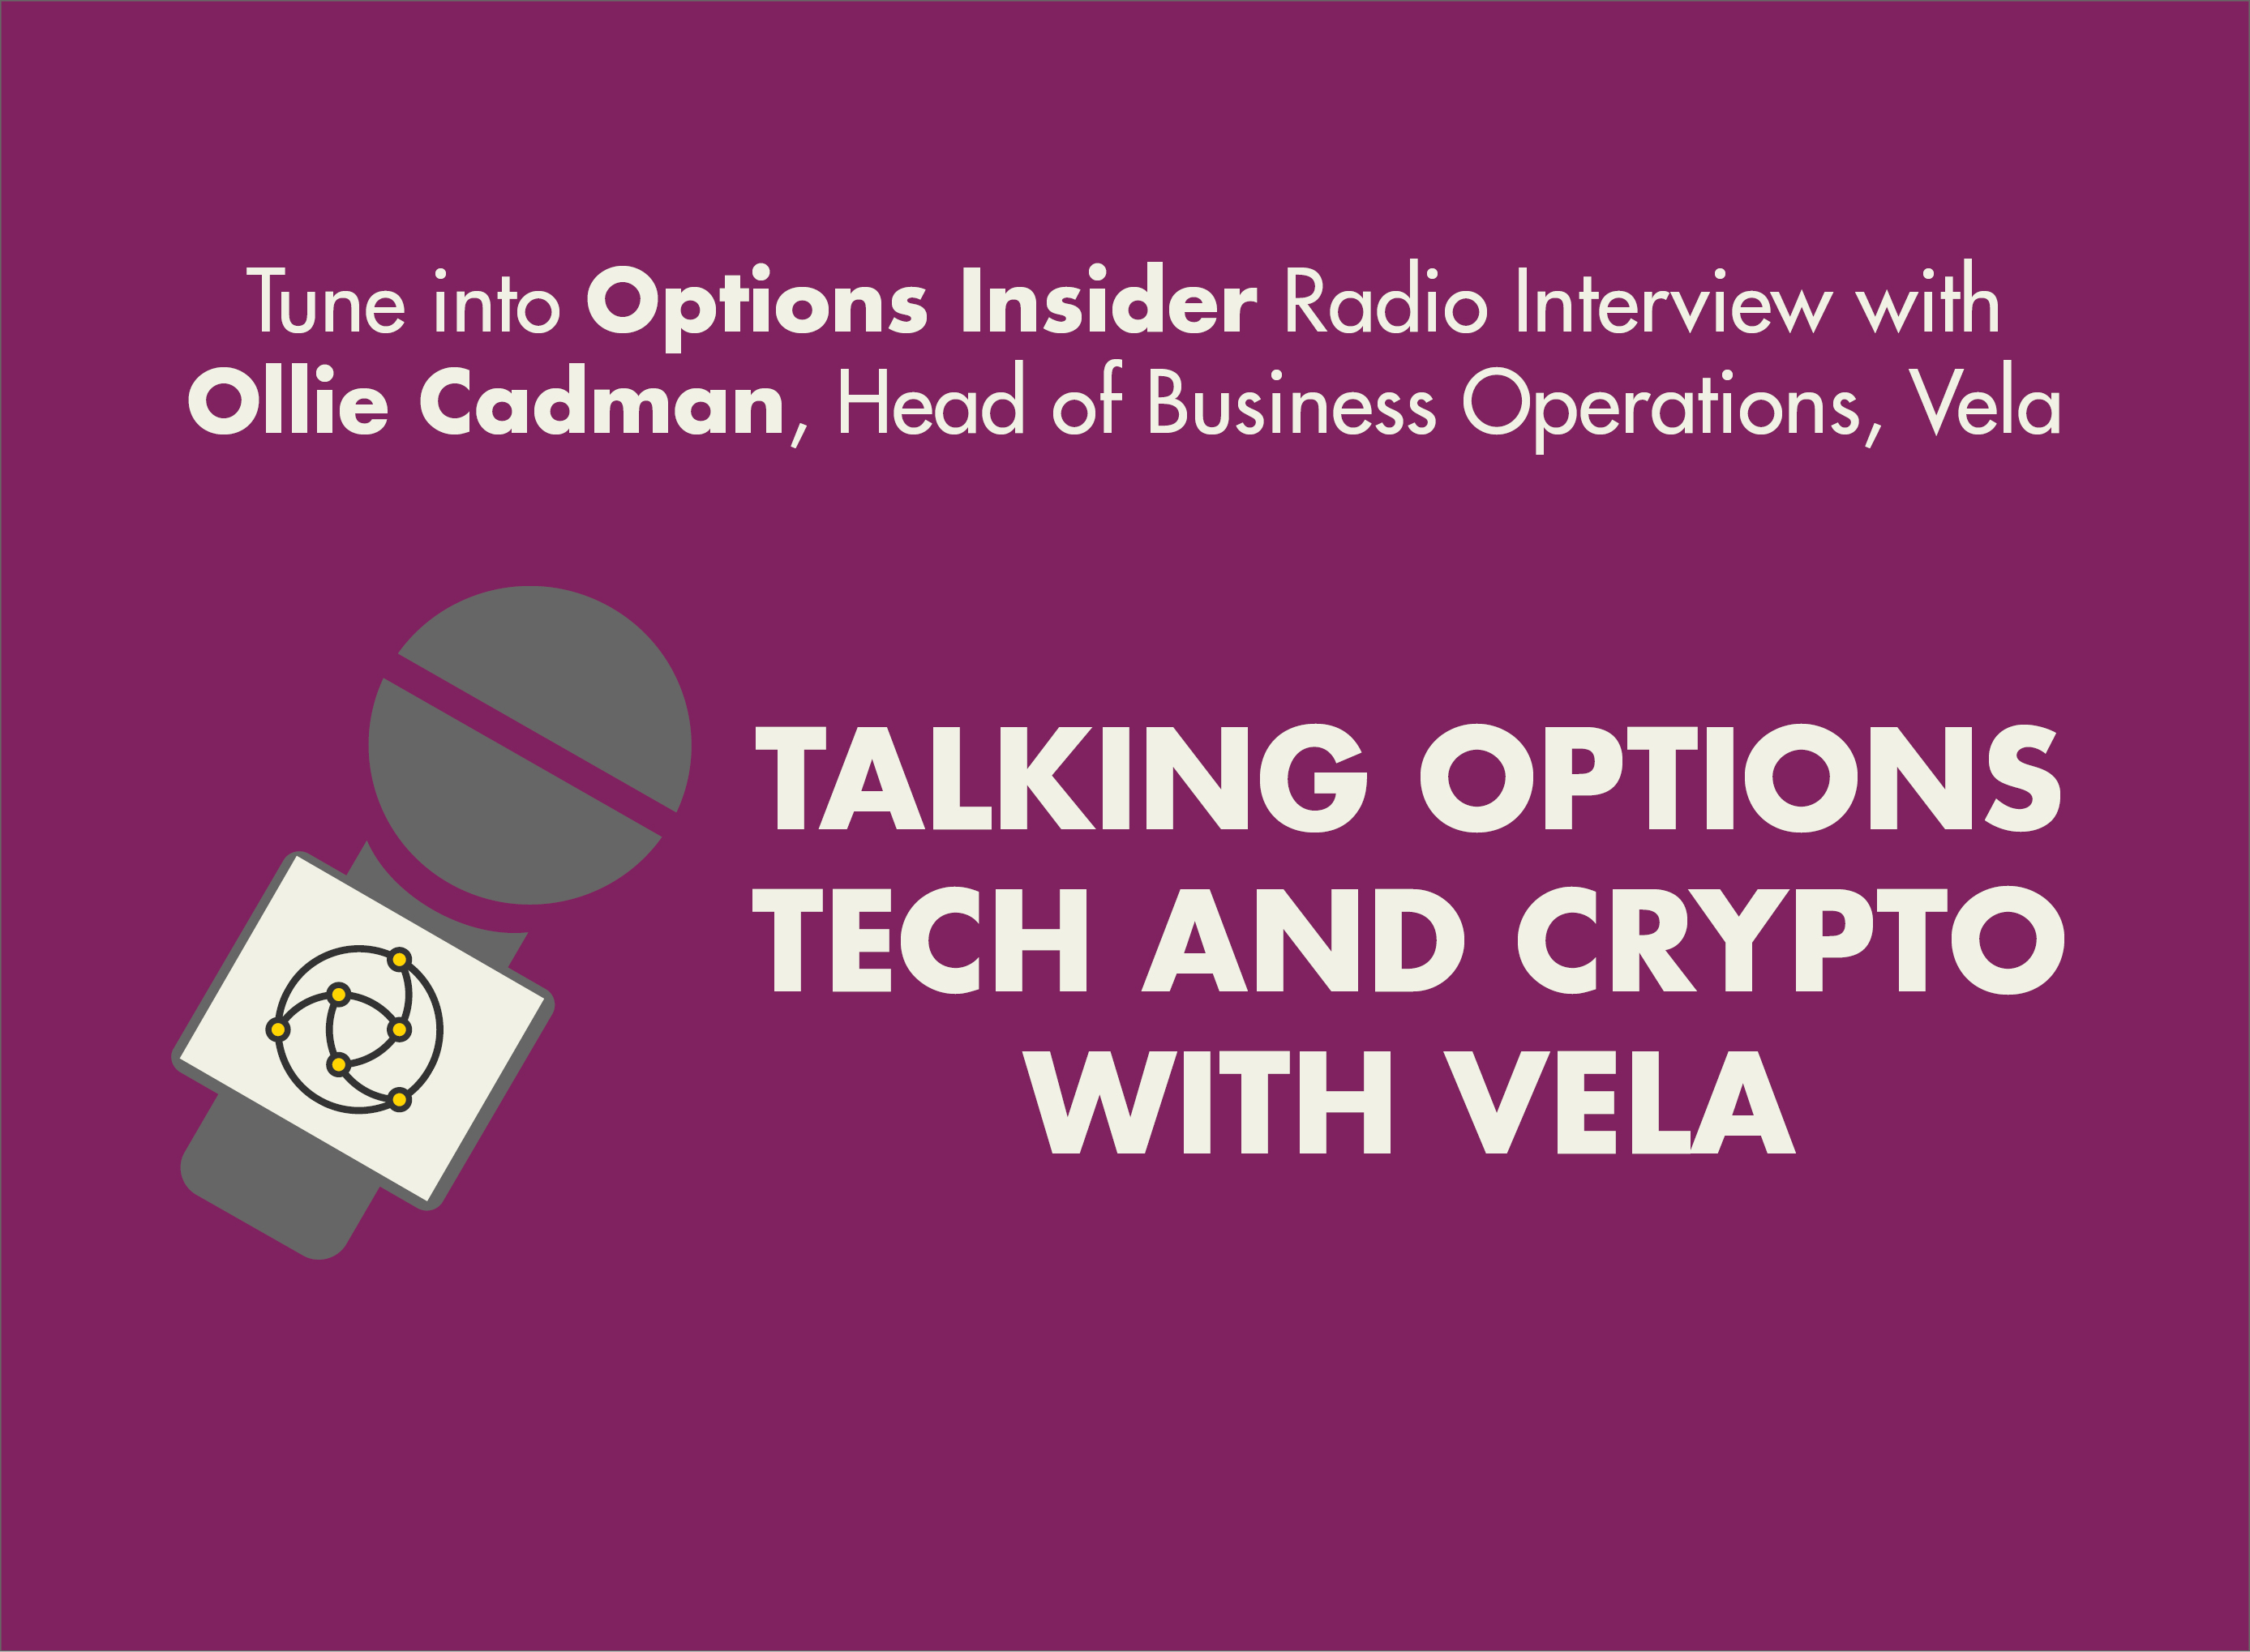 Talking Options Tech and Crypto with Vela